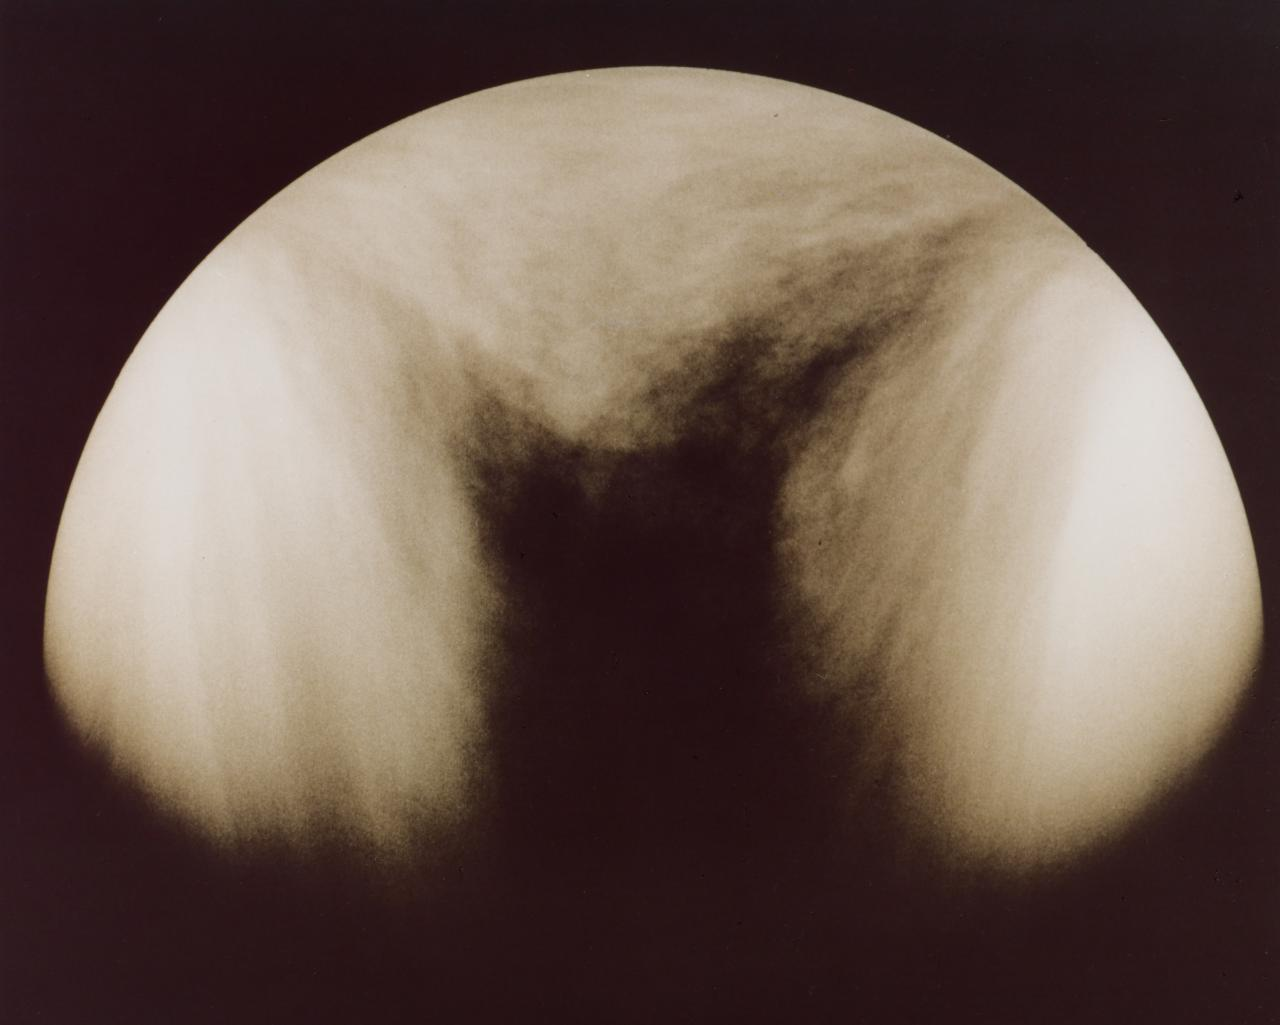 10th January 1979 image of Venus showing dark, horizontal Y feature